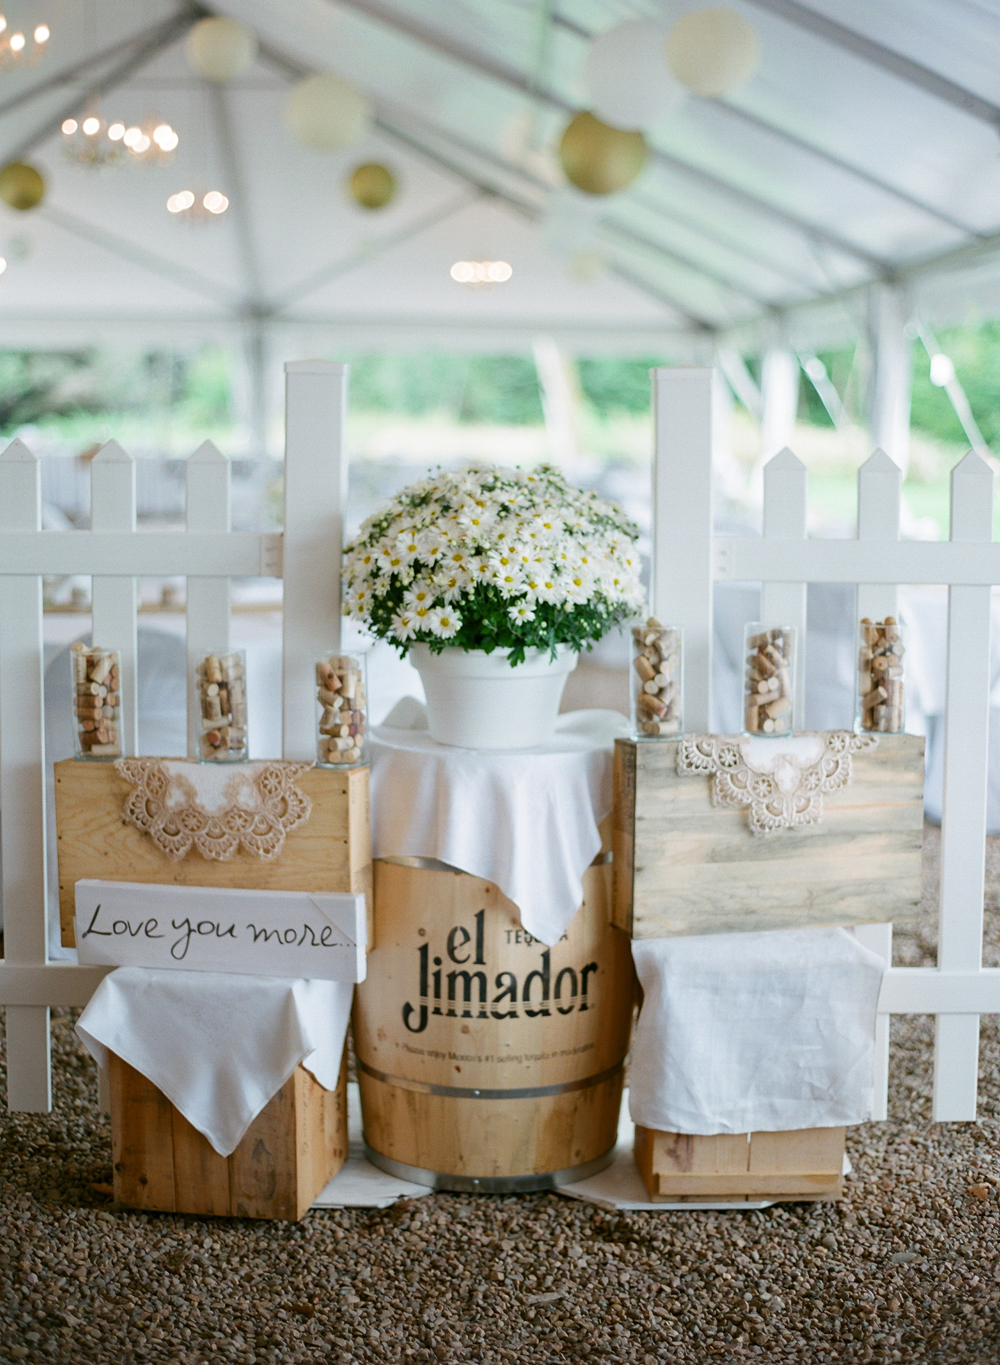 munson-bridge-winery-wedding-057